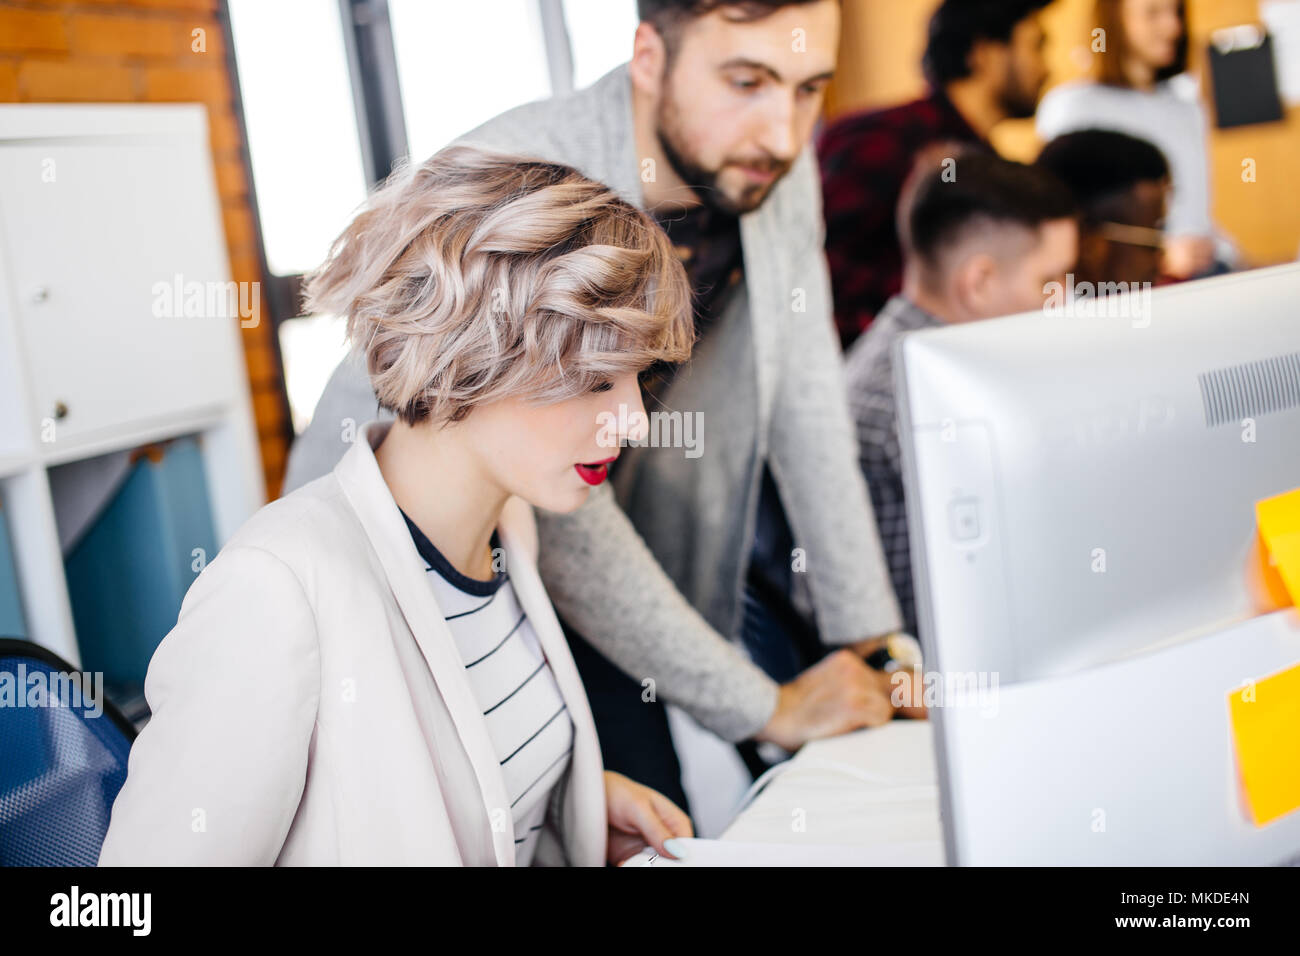 Startup good-looking business partners working together in loft office.close up photo of beautiful stylish secretary working with computer with blurre - Stock Image